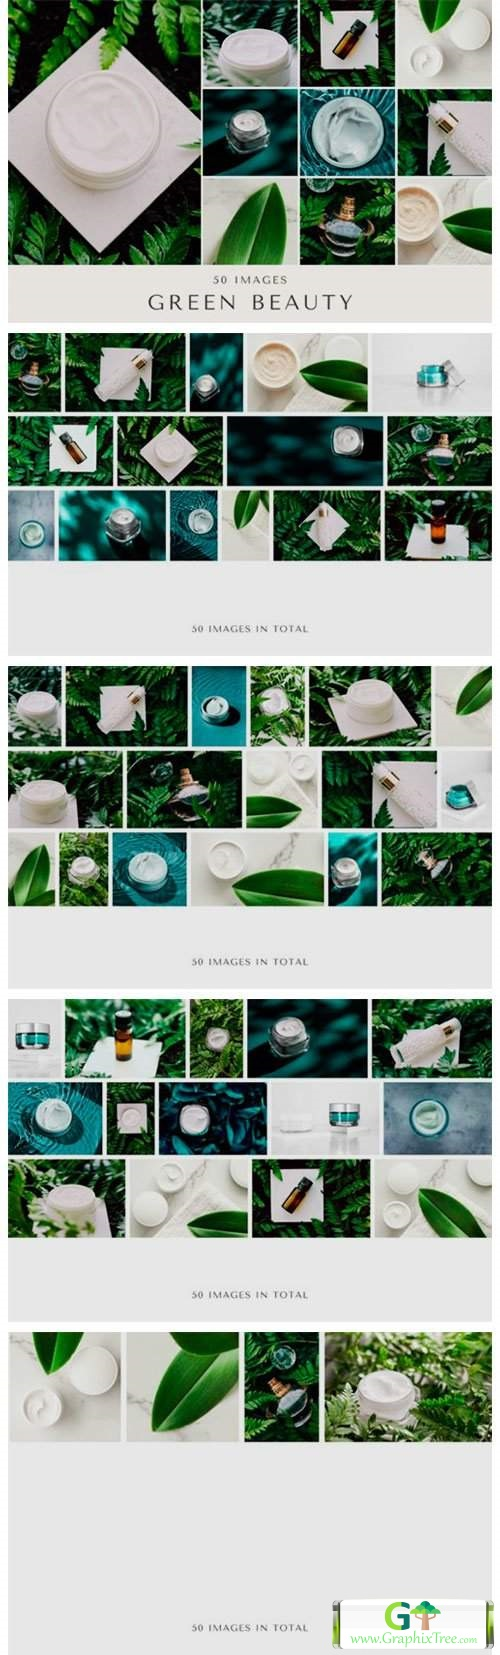 50 Images | Green Beauty Bundle